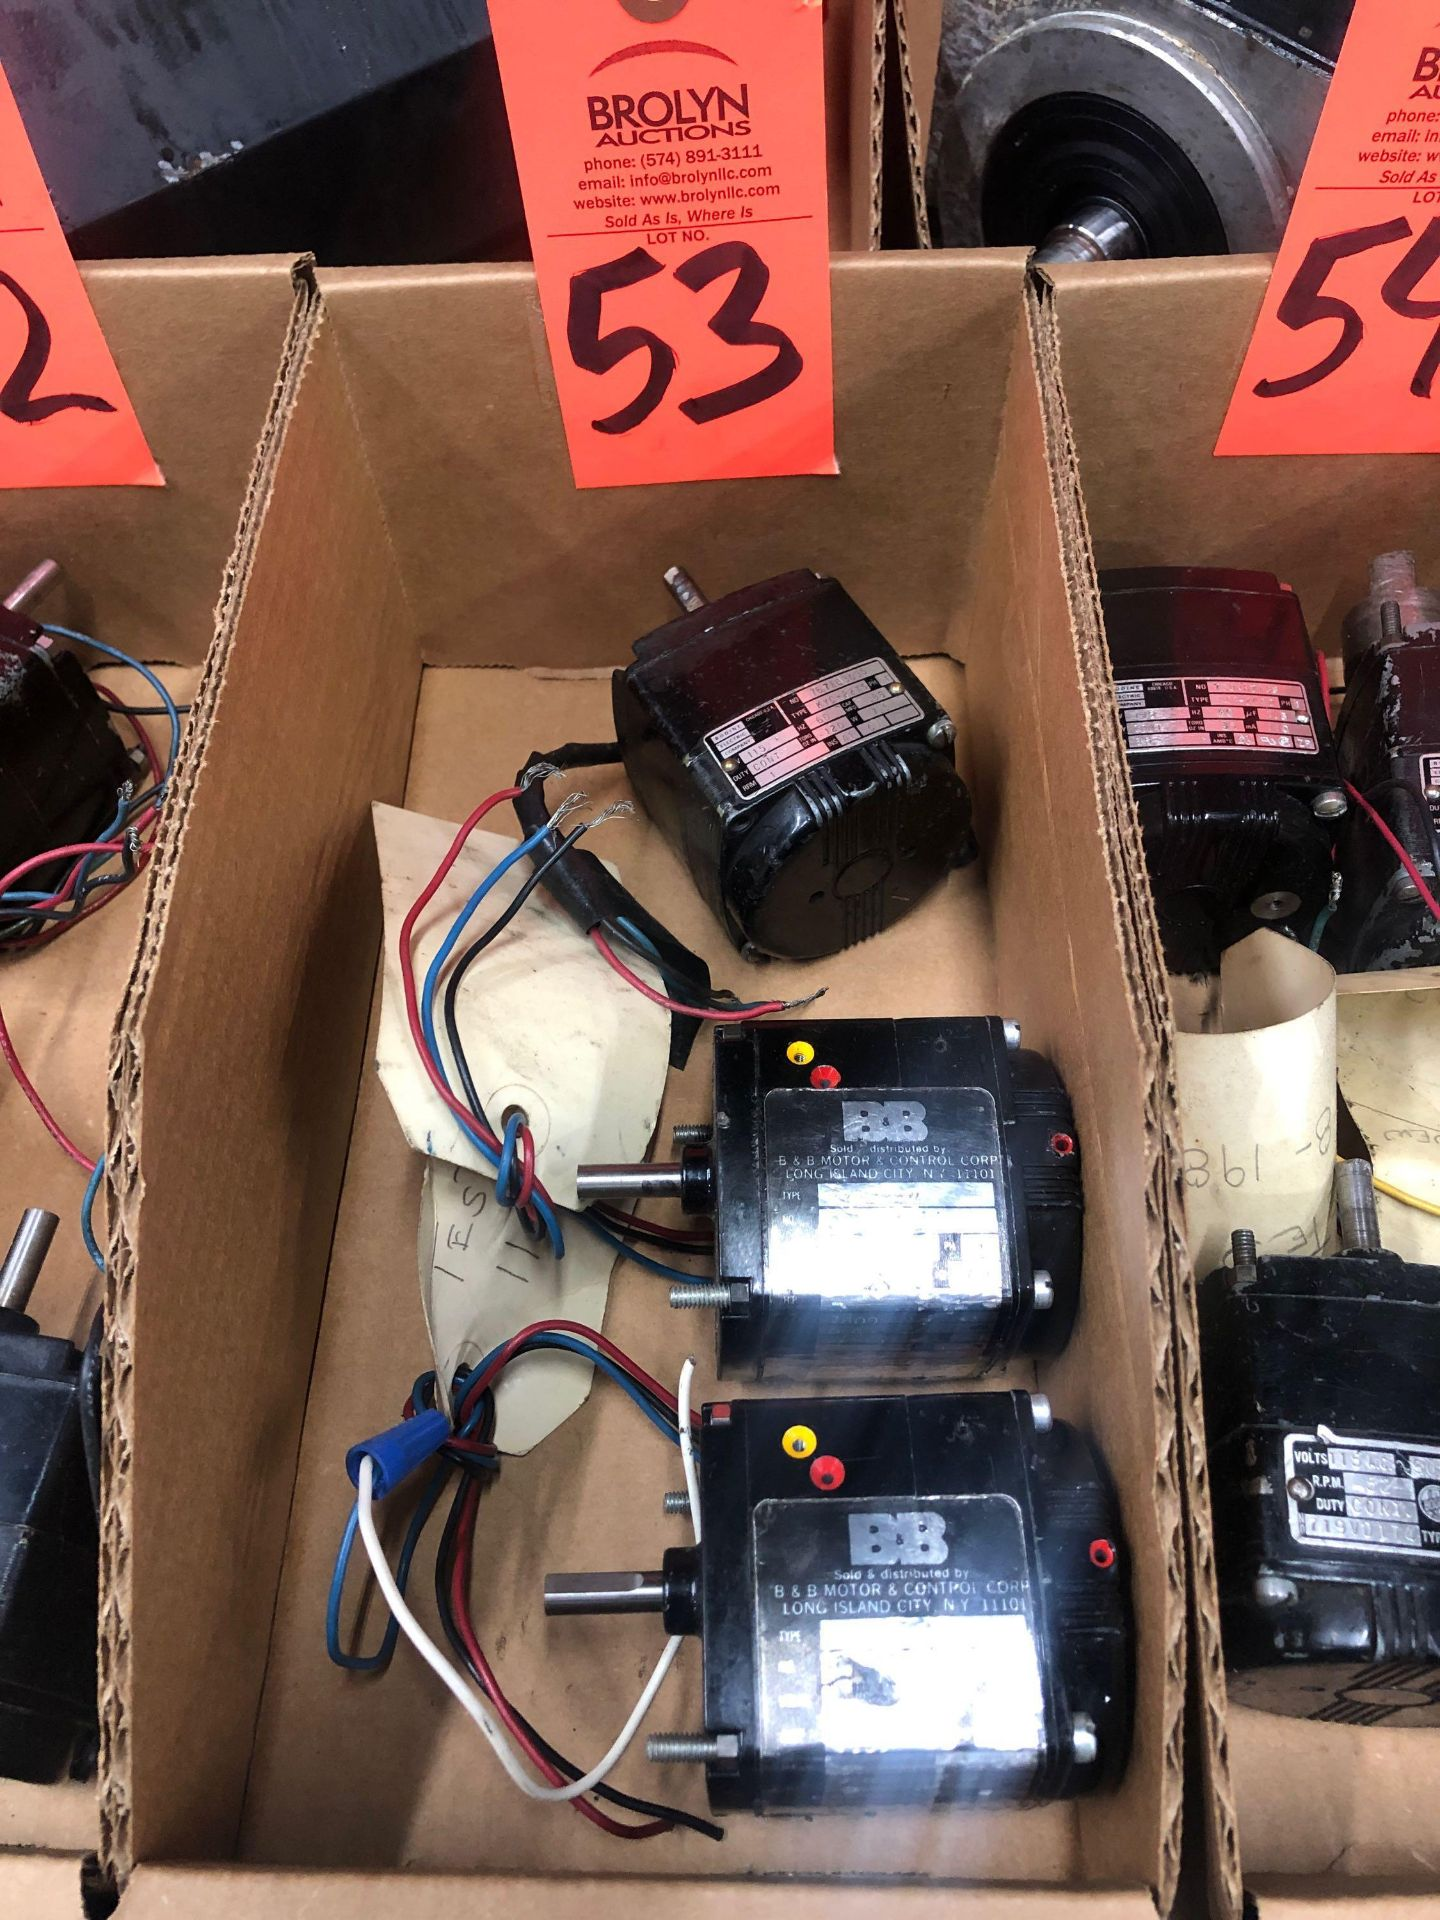 Lot 53 - Qty 3 - assorted Bodine motors as pictured.